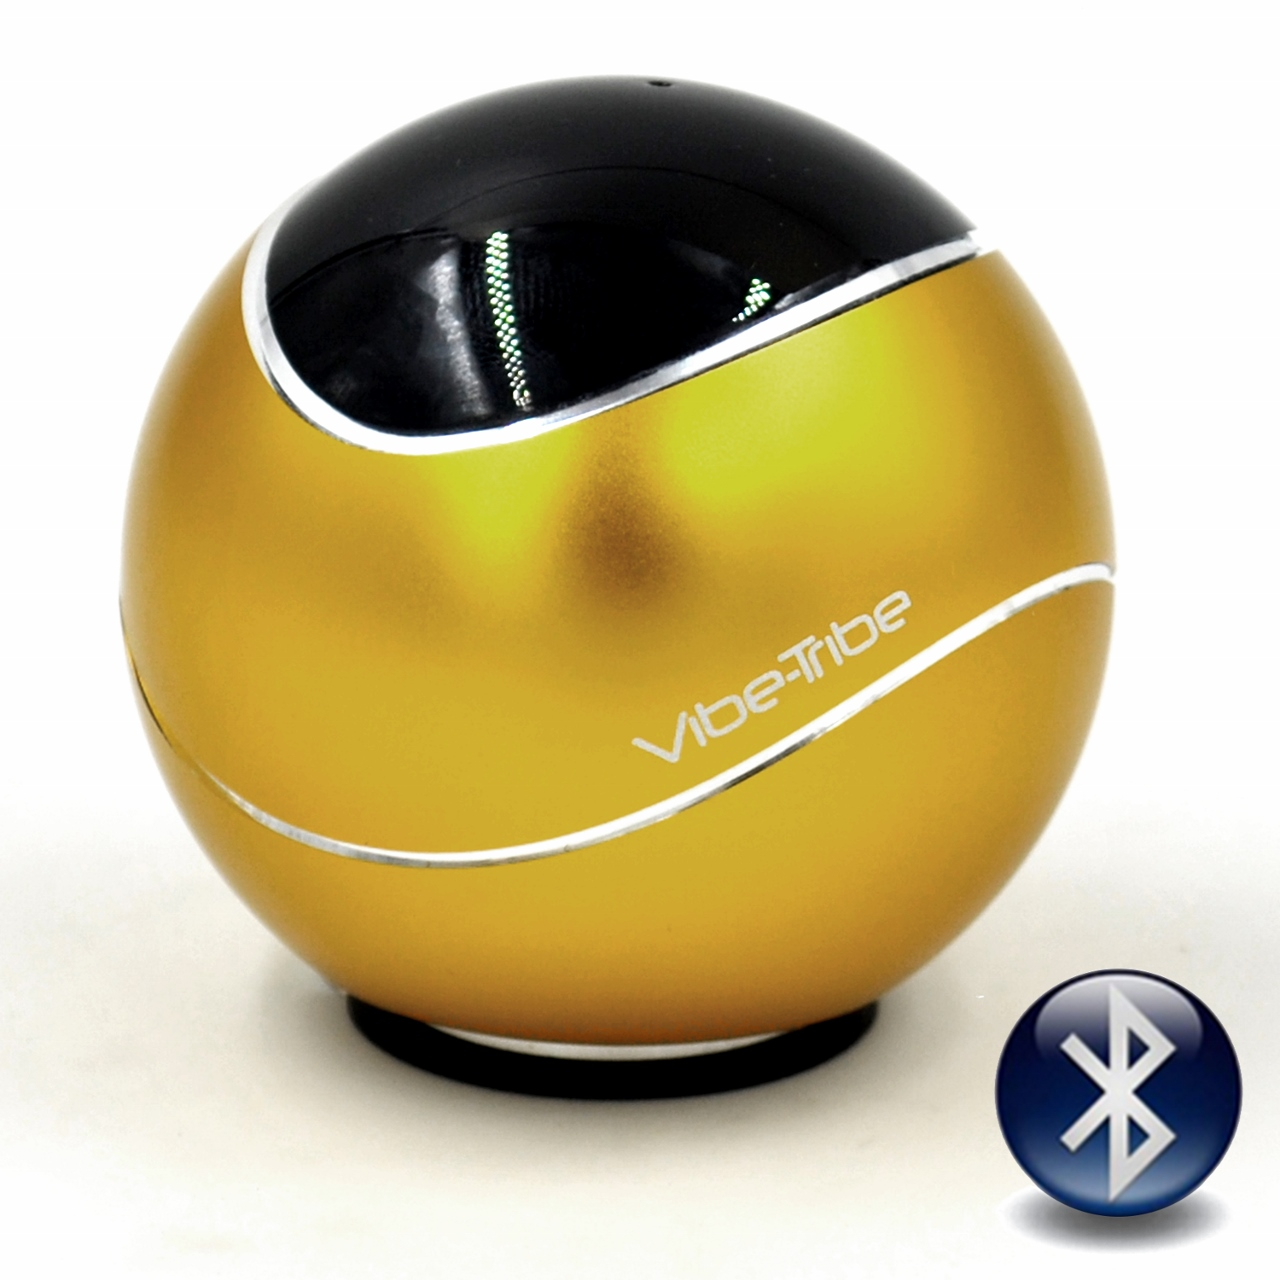 Orbit vibe-tribe bluetooth vibration resonance speaker lemon yellow 02 1280x1280